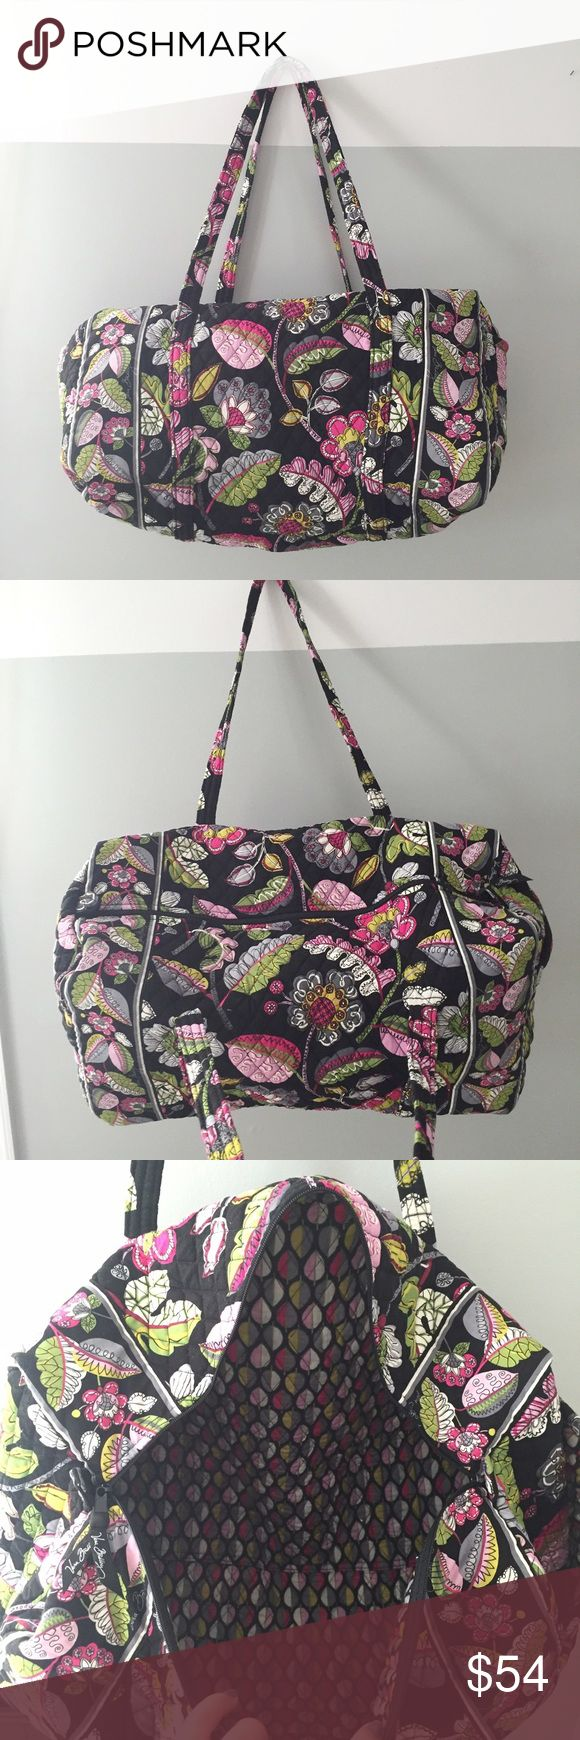 Vera Bradley duffle large new w/o tags Never used!! New without tags large Vera Bradley duffel bag. Got as gift but already had one! Great bag for travel ☺️ black with colorful floral pattern Vera Bradley Bags Travel Bags